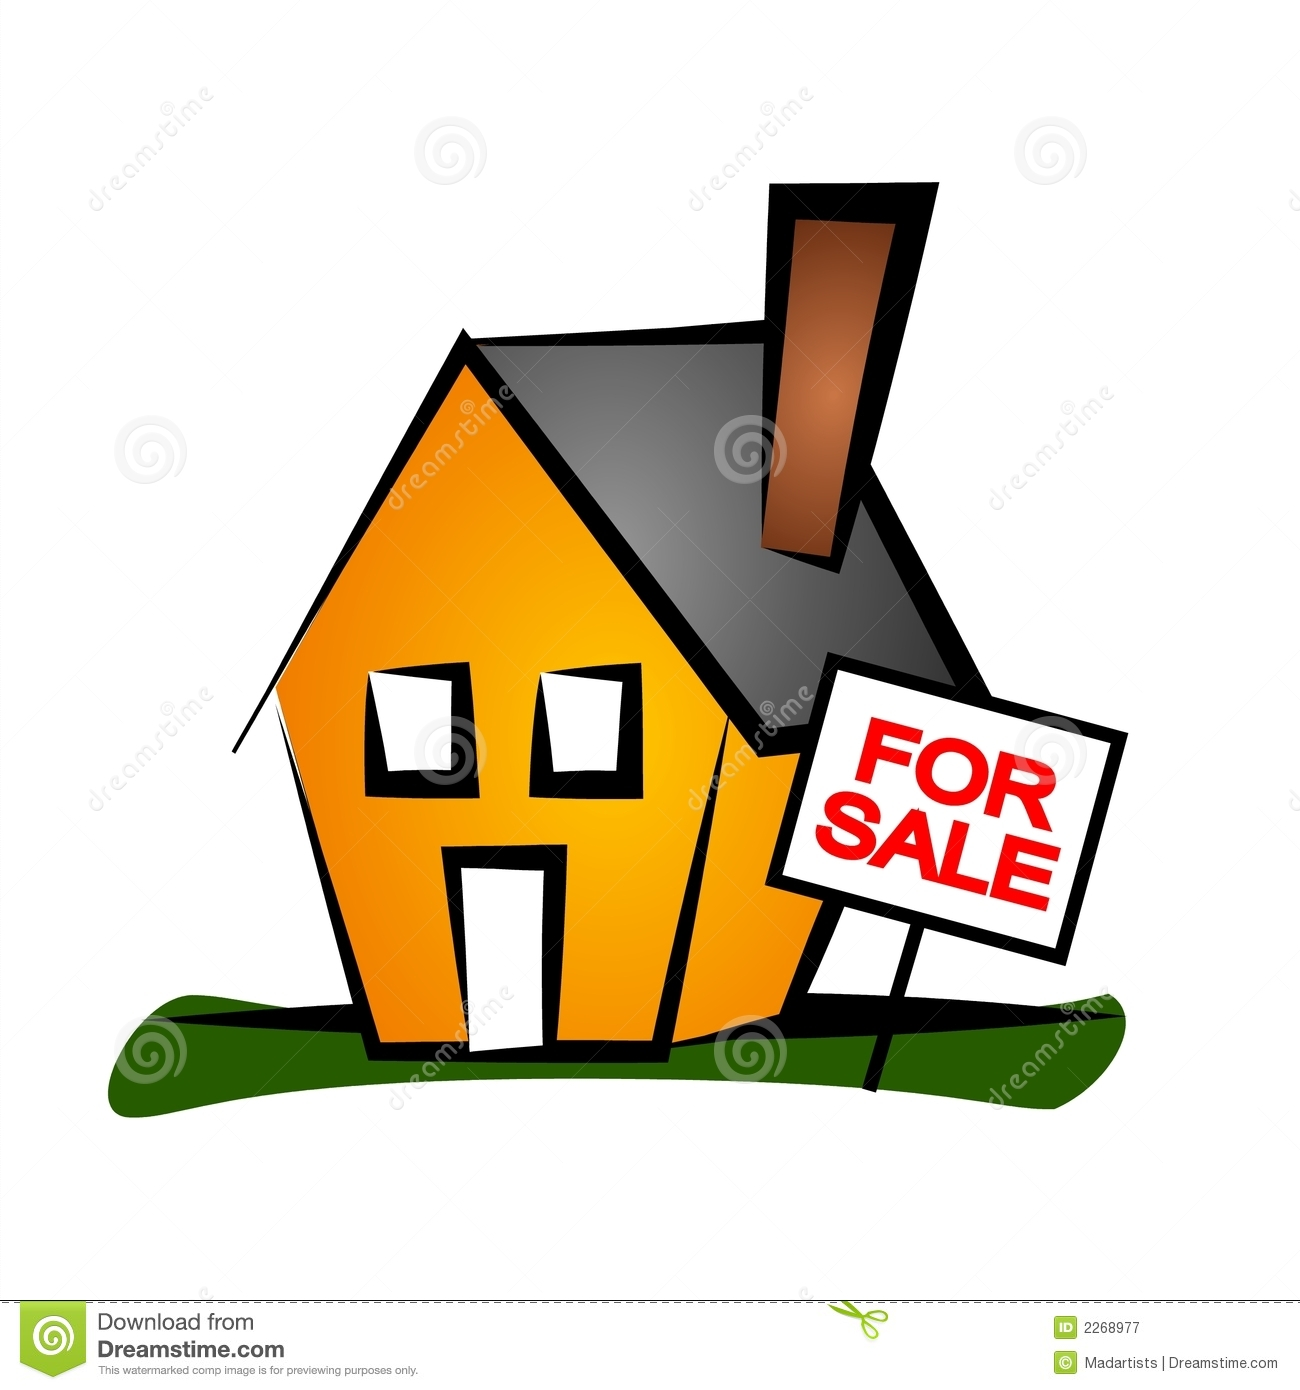 Real Estate Clip Art House 1 Royalty Free Stock Photography ...